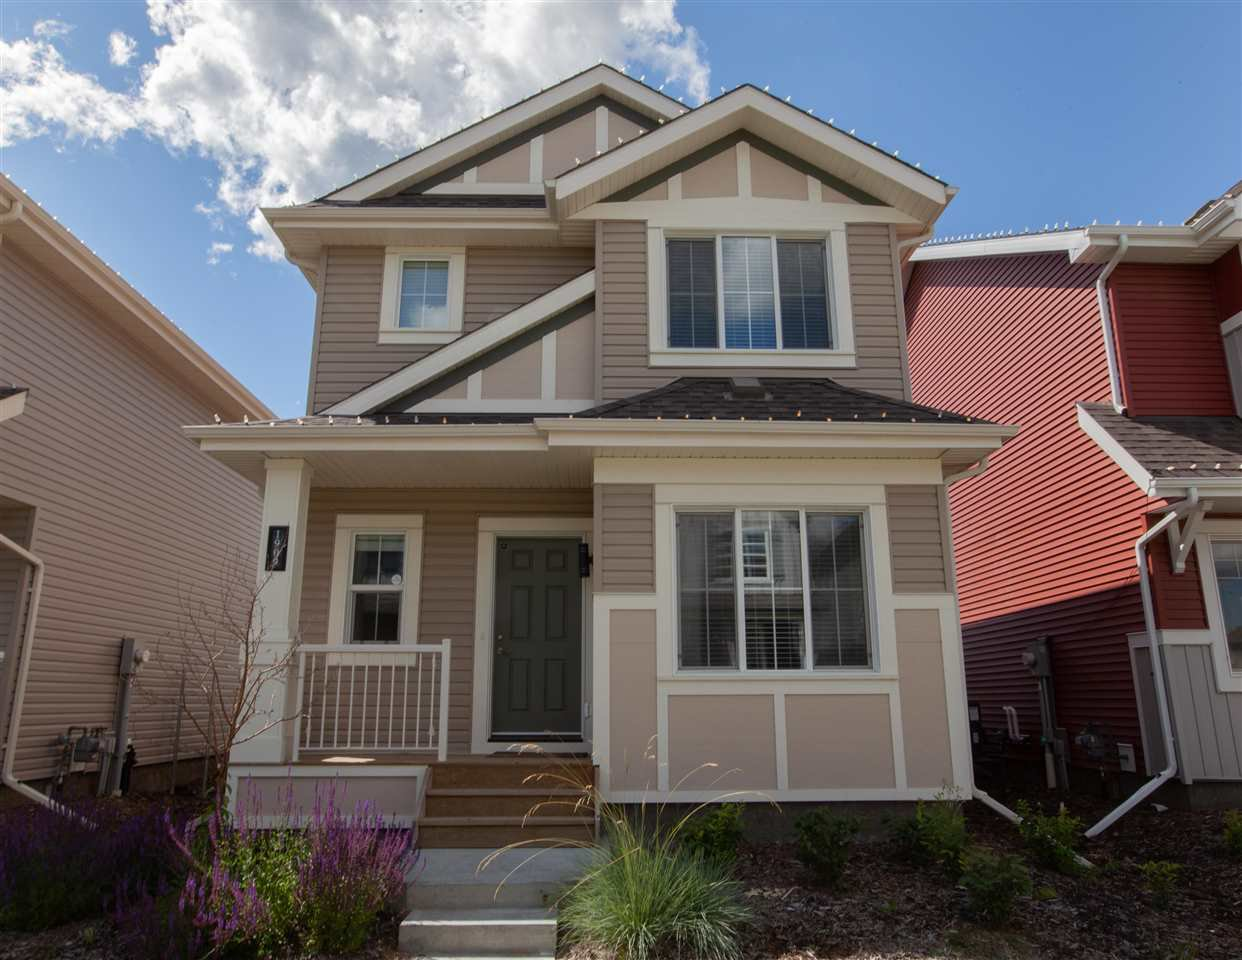 Main Photo: 1909 25A Street in Edmonton: Zone 30 House for sale : MLS®# E4214919